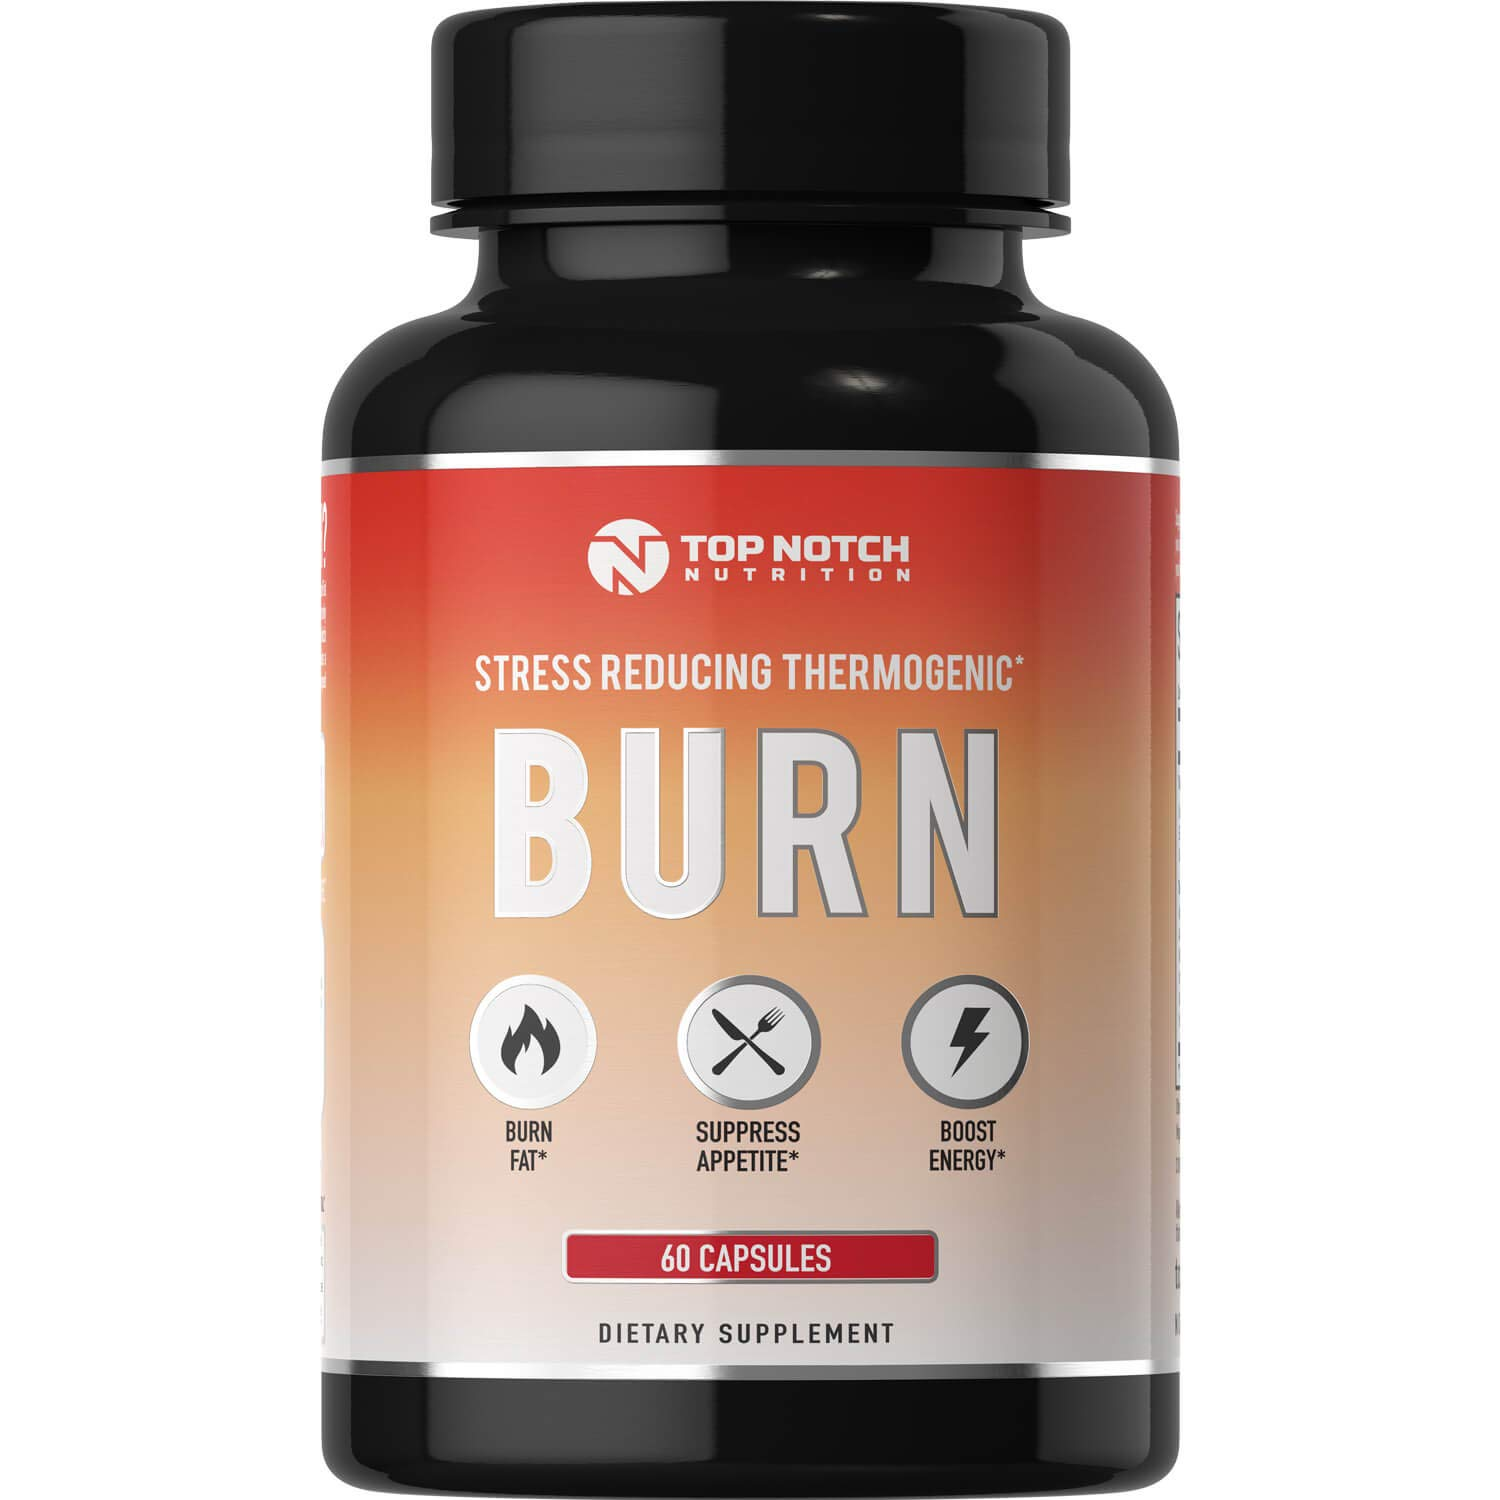 Top Notch Nutrition 4 in 1 Thermogenic Fat Burning Weight Loss Pills for Women and Men Energy Boost Appetite Suppressant Diet Pills Boost Metabolism Burns More Calories & Manage Stress by TOP NOTCH NUTRITION